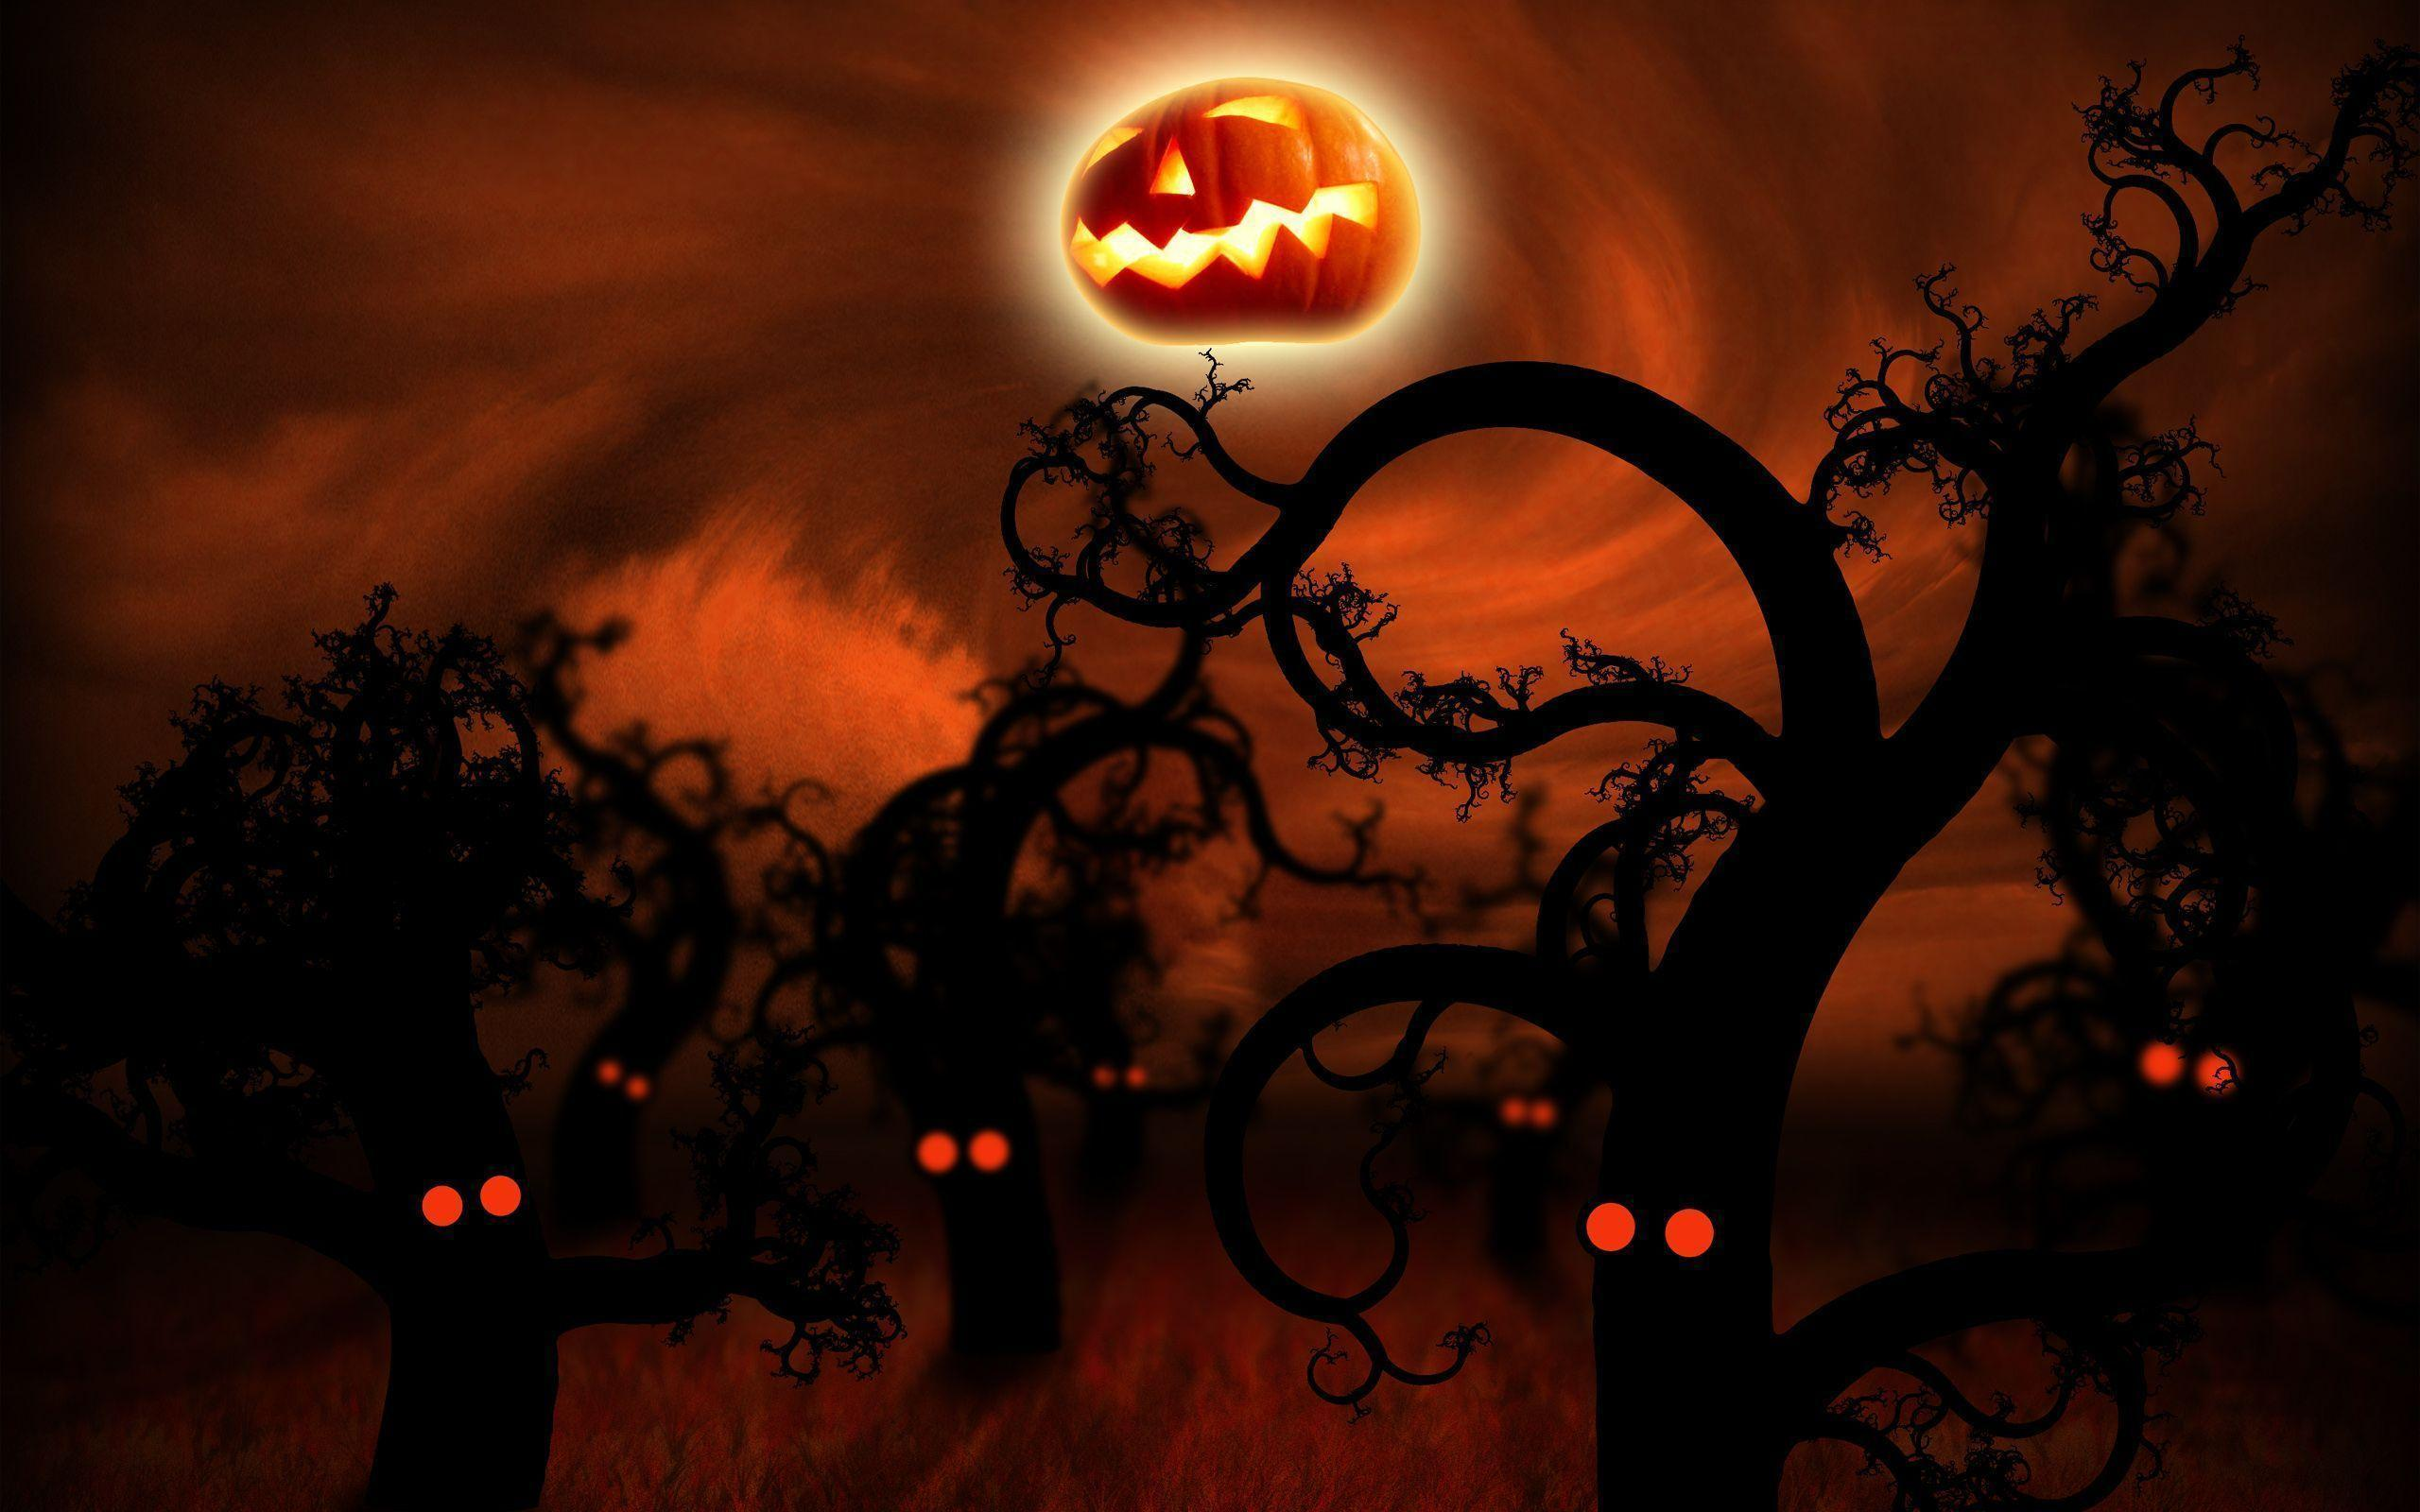 40 Sizzling Halloween Wallpapers